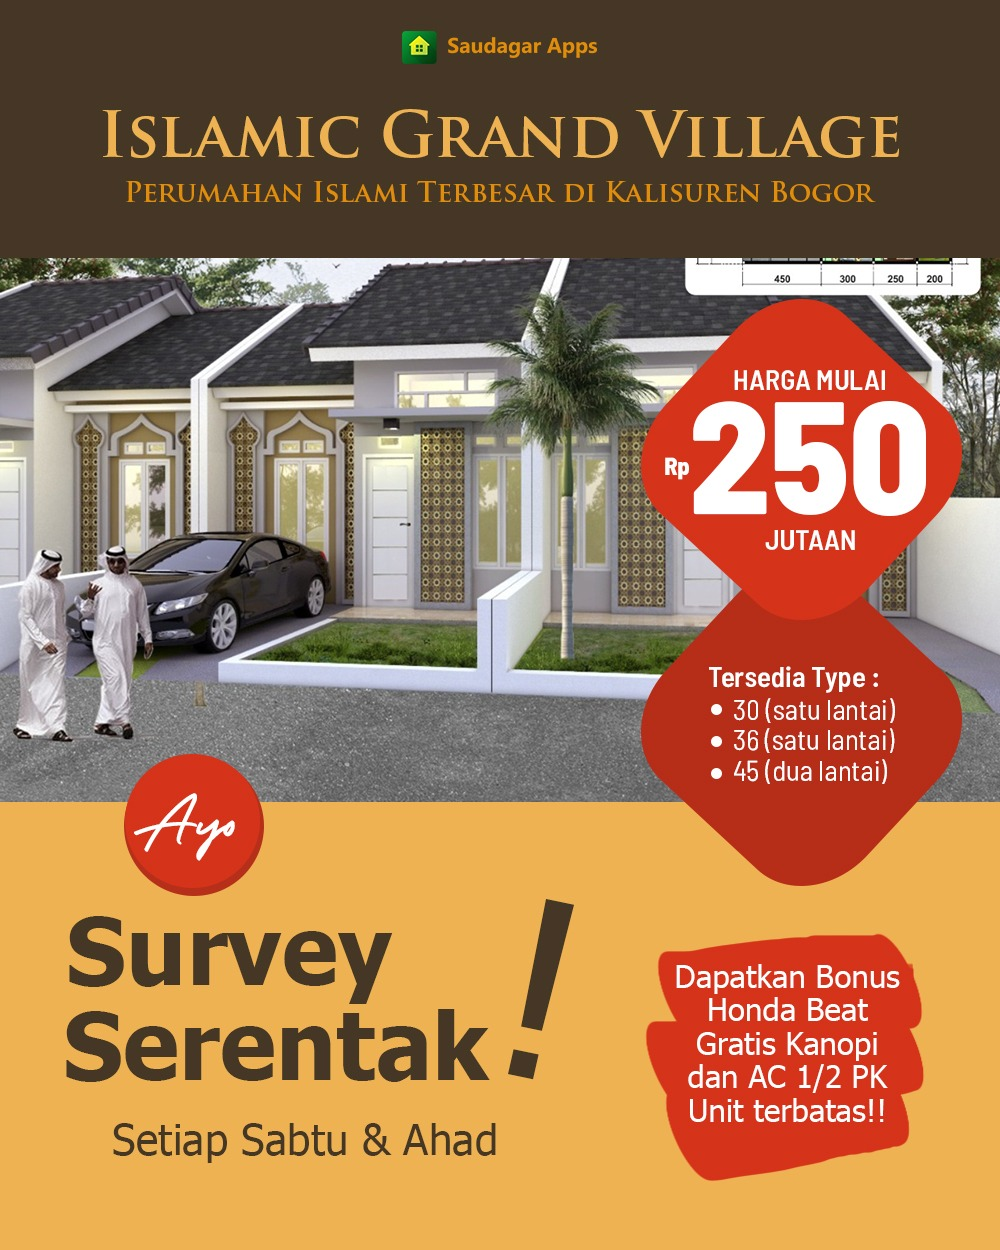 Islamic Grand Village Kalisuren Bogor 9